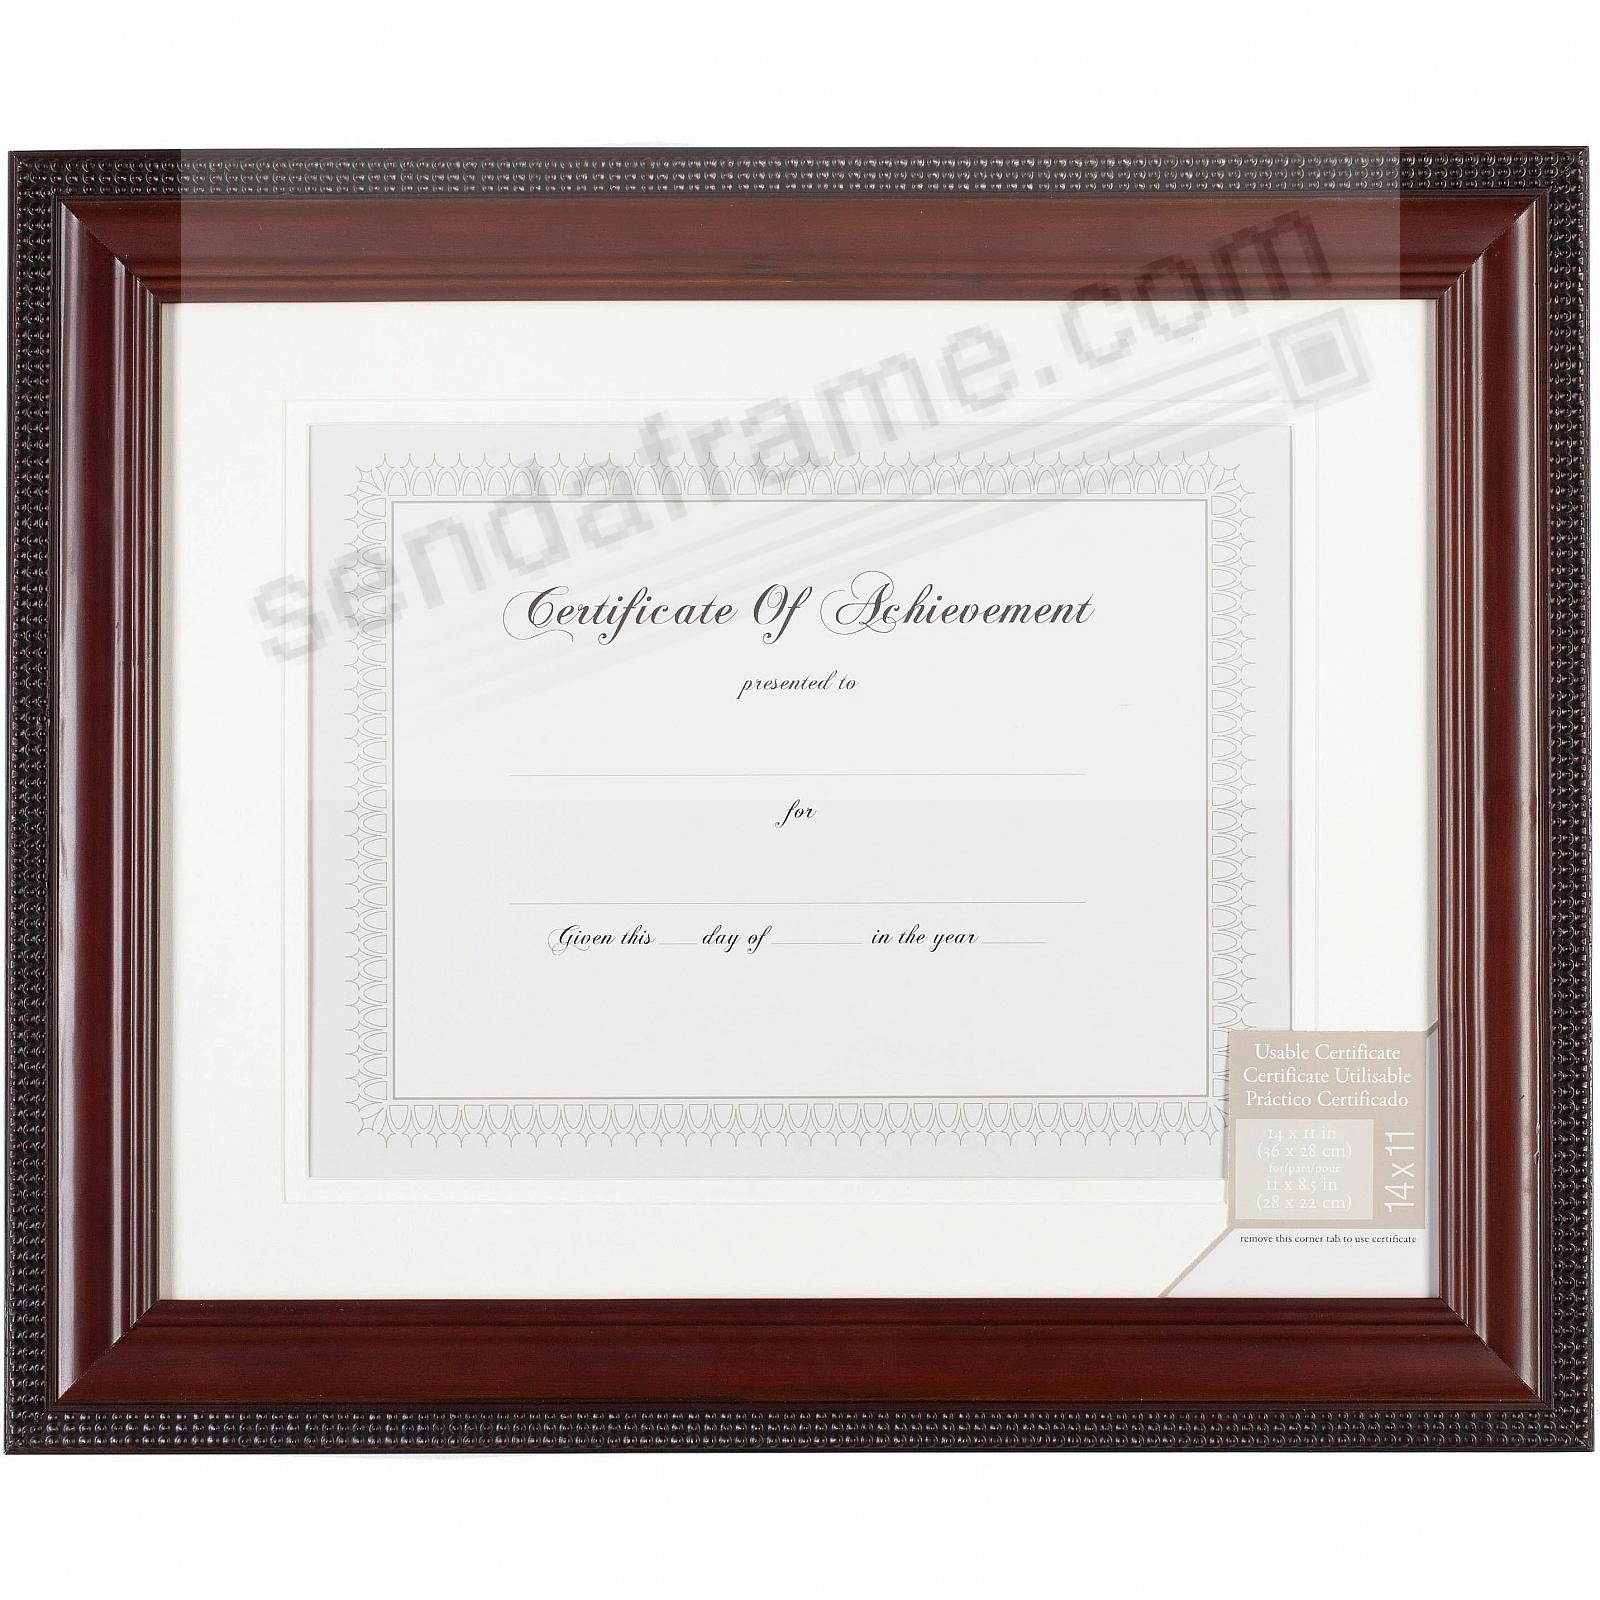 bead border mahogany finish matted 14x11 11x8frac12 certificate frame by gallery solutionsreg